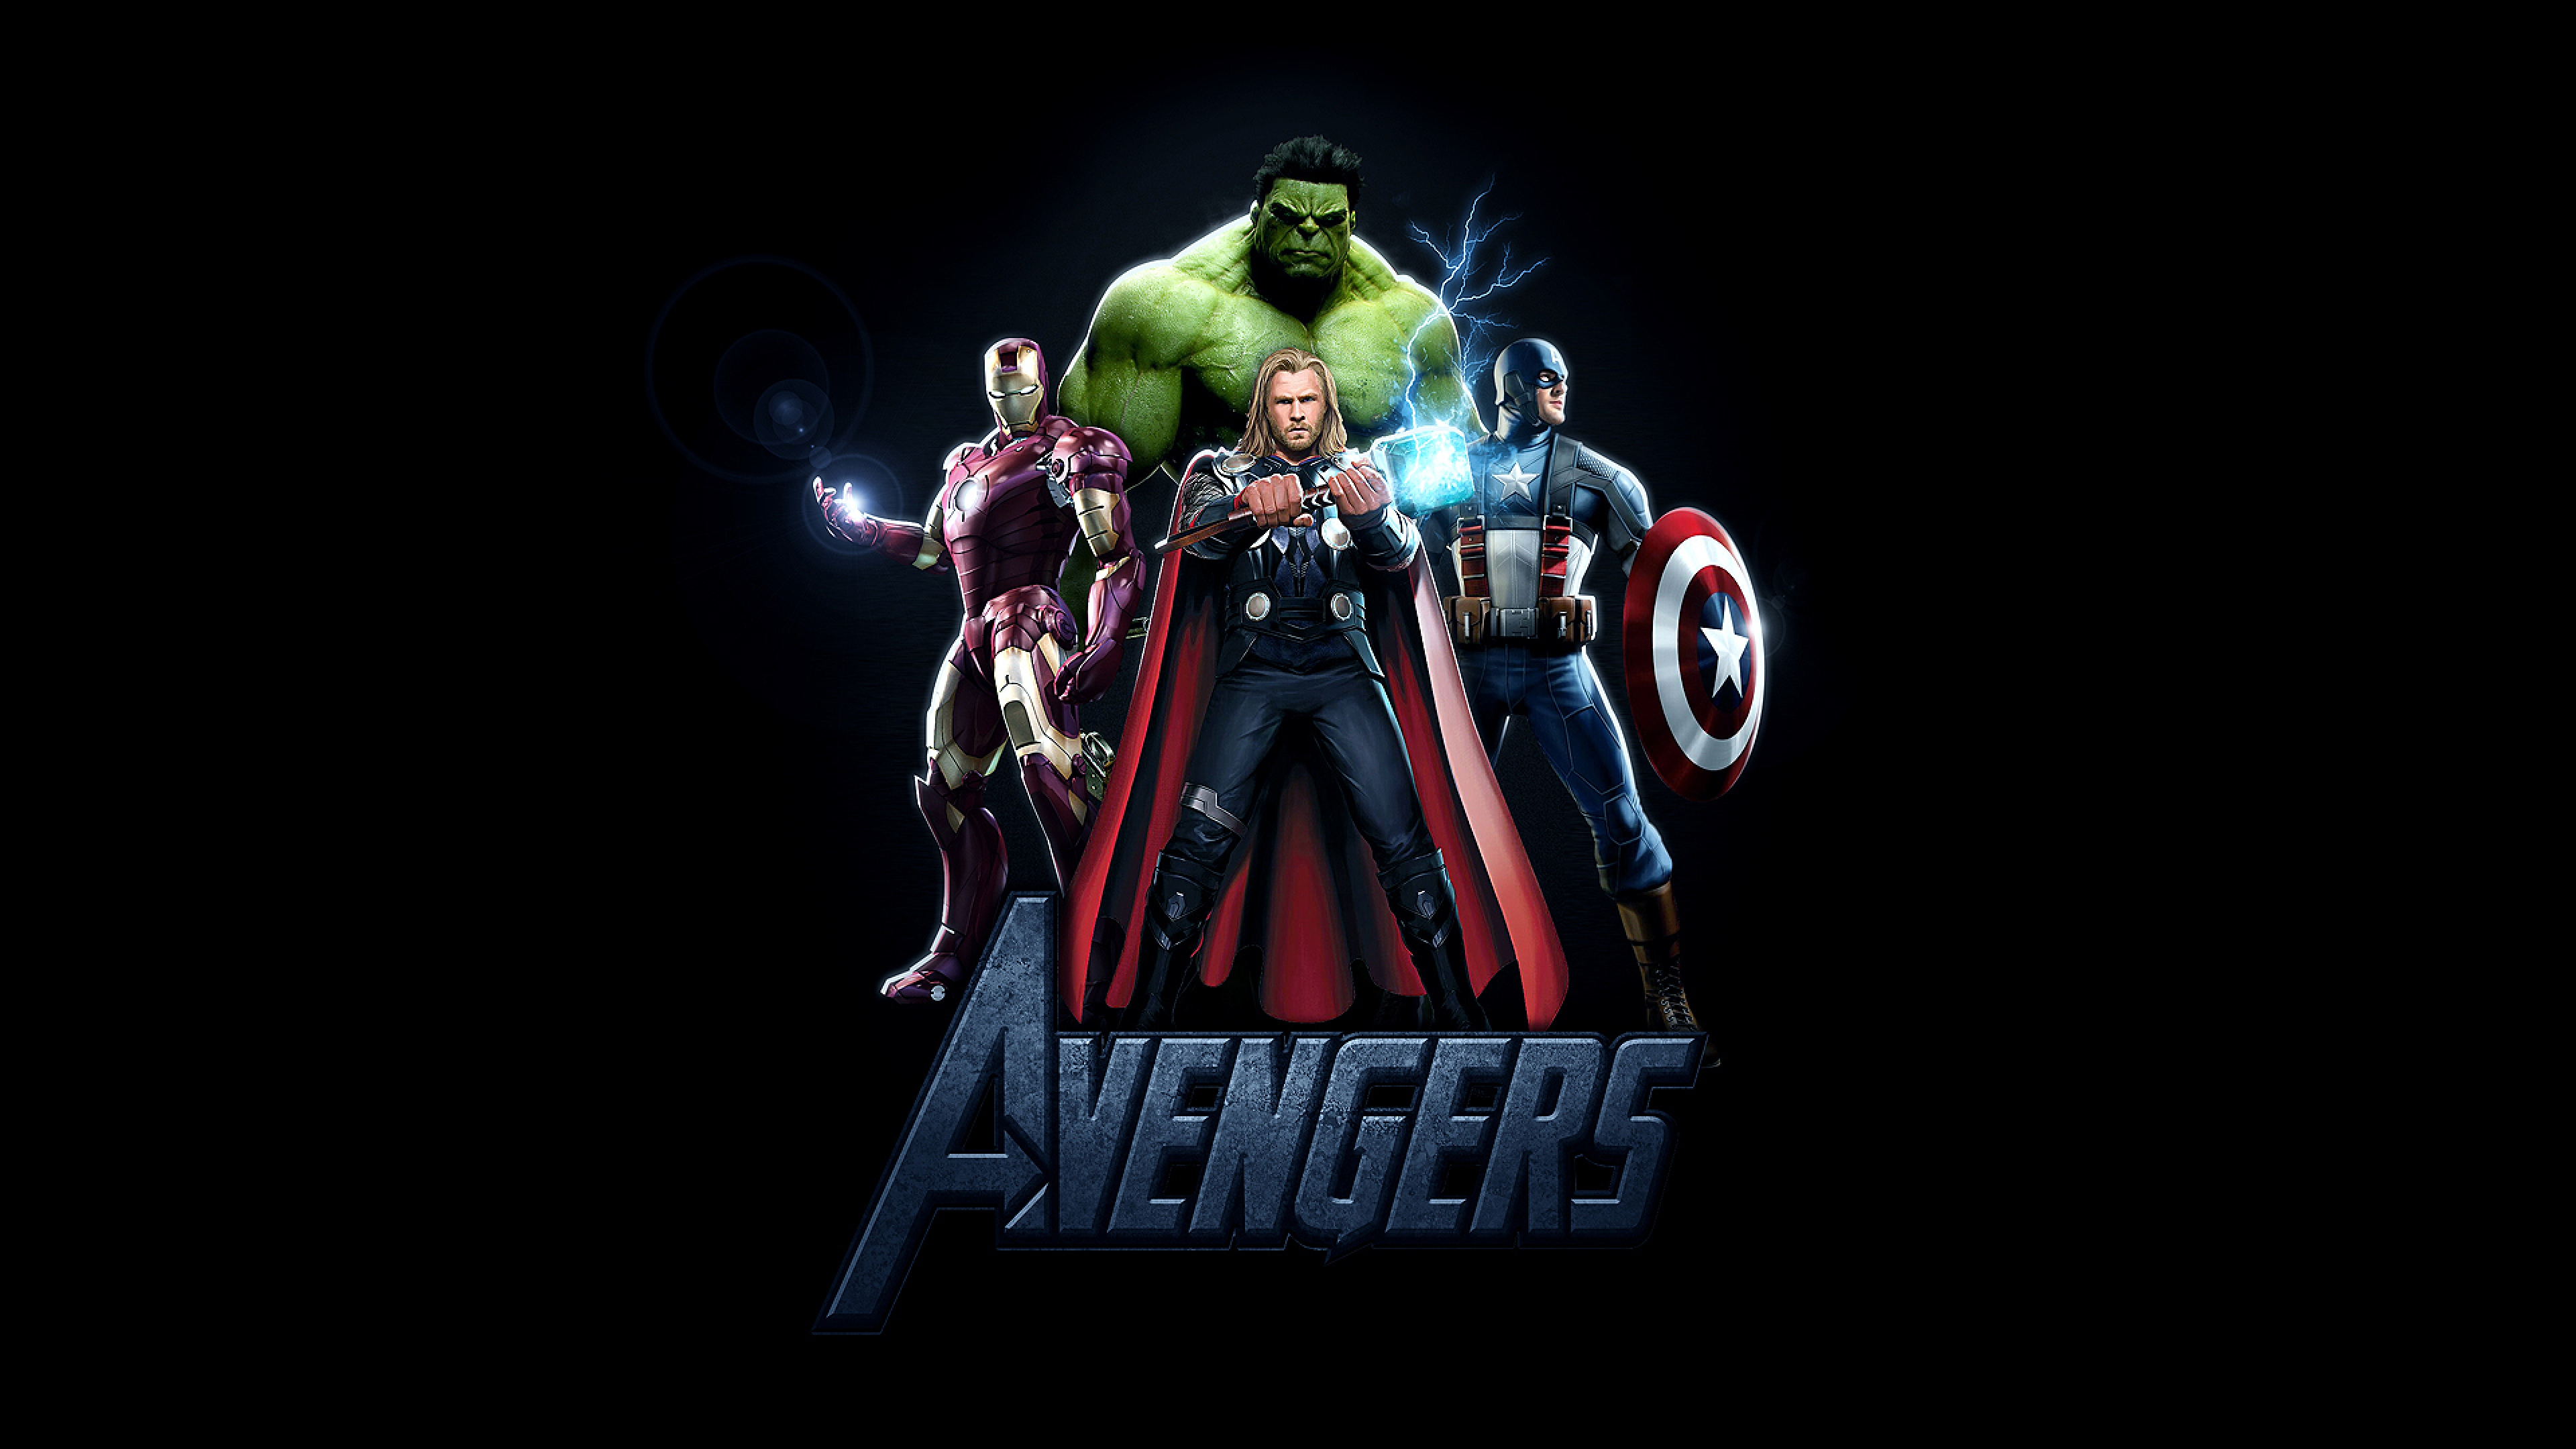 Hulk Ironman Captainamerica Thor Marvel Comics Powerfull Avengers Hd Wallpaper